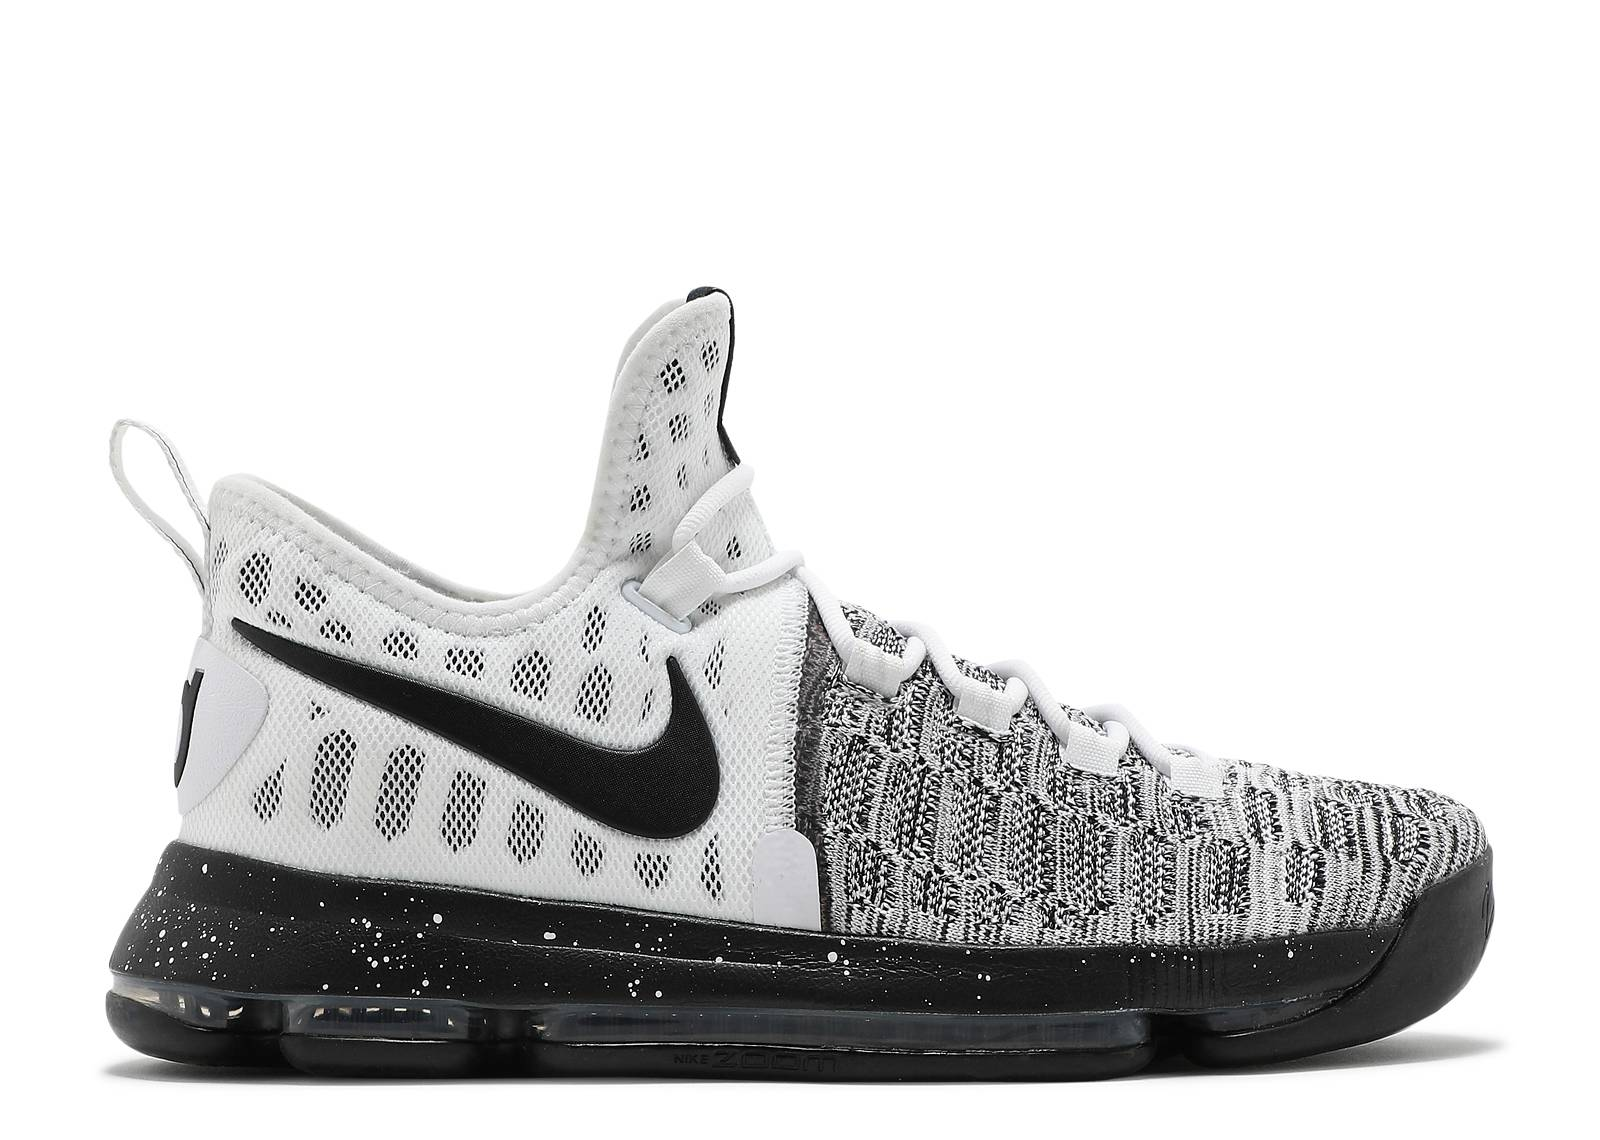 separation shoes b4ca5 5ba09 nike. Zoom kd 9